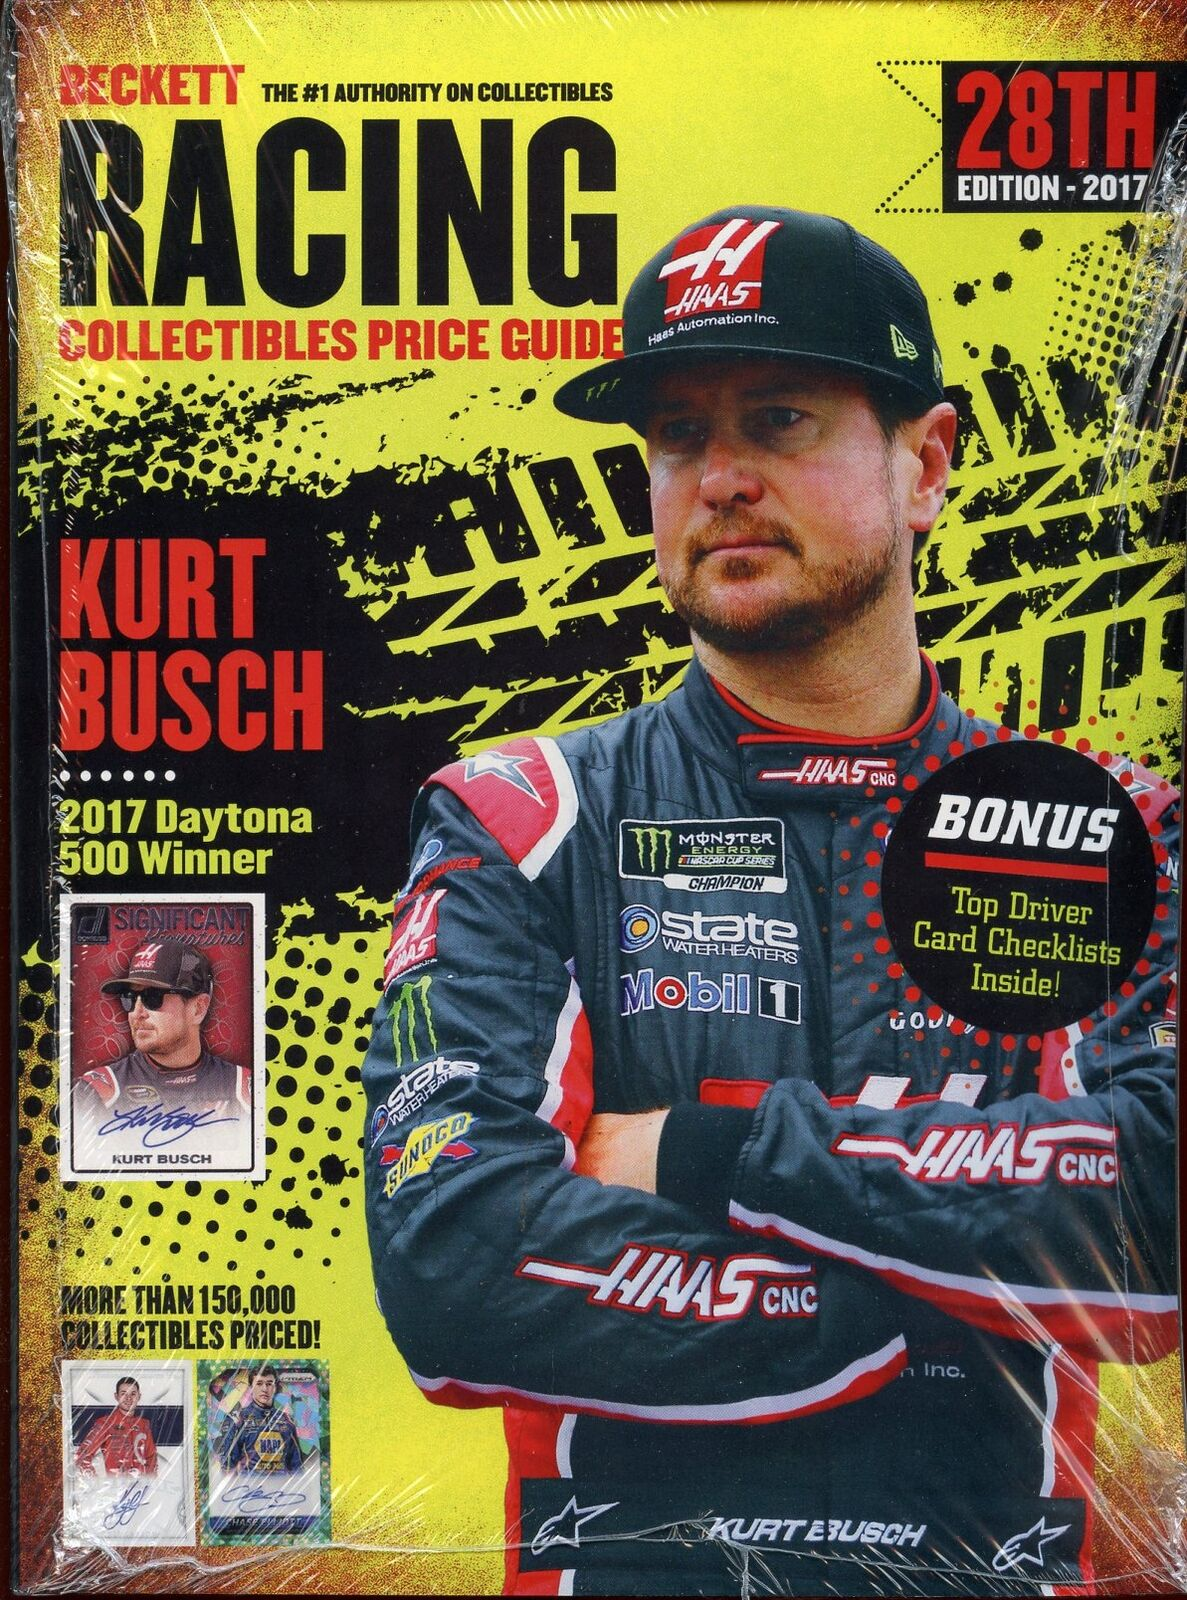 Details About 2017 Beckett Racing Collectibles Card Price Guide 28th Edition Kurt Busch